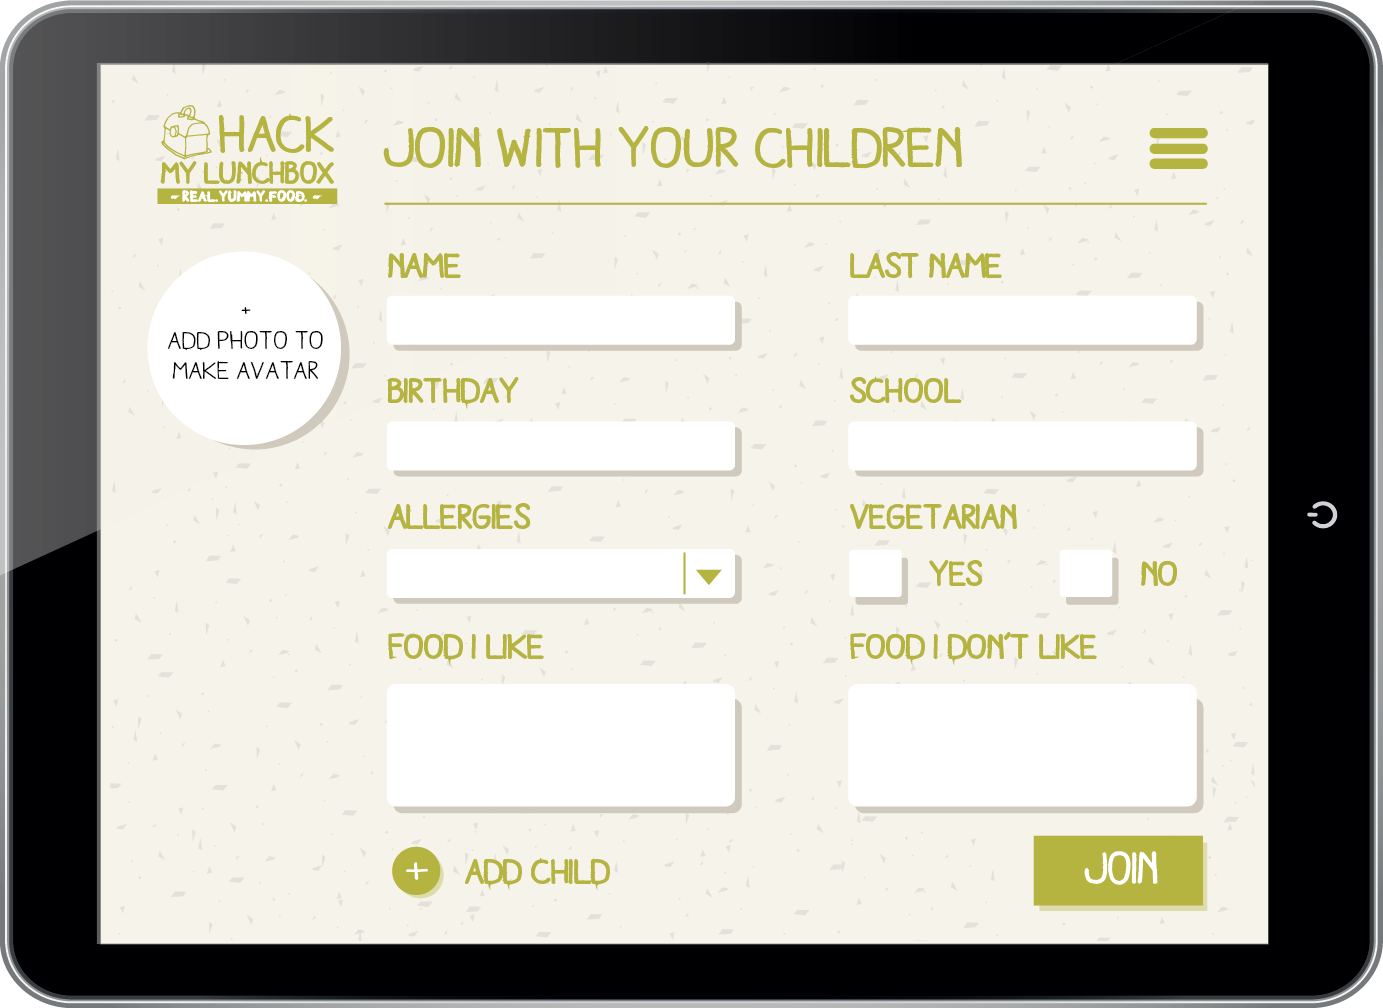 SIGN UP FORM -  Here the user can add her child's profile, by entering the criteria. She/he can add more children, and have separate profiles on a unified account.